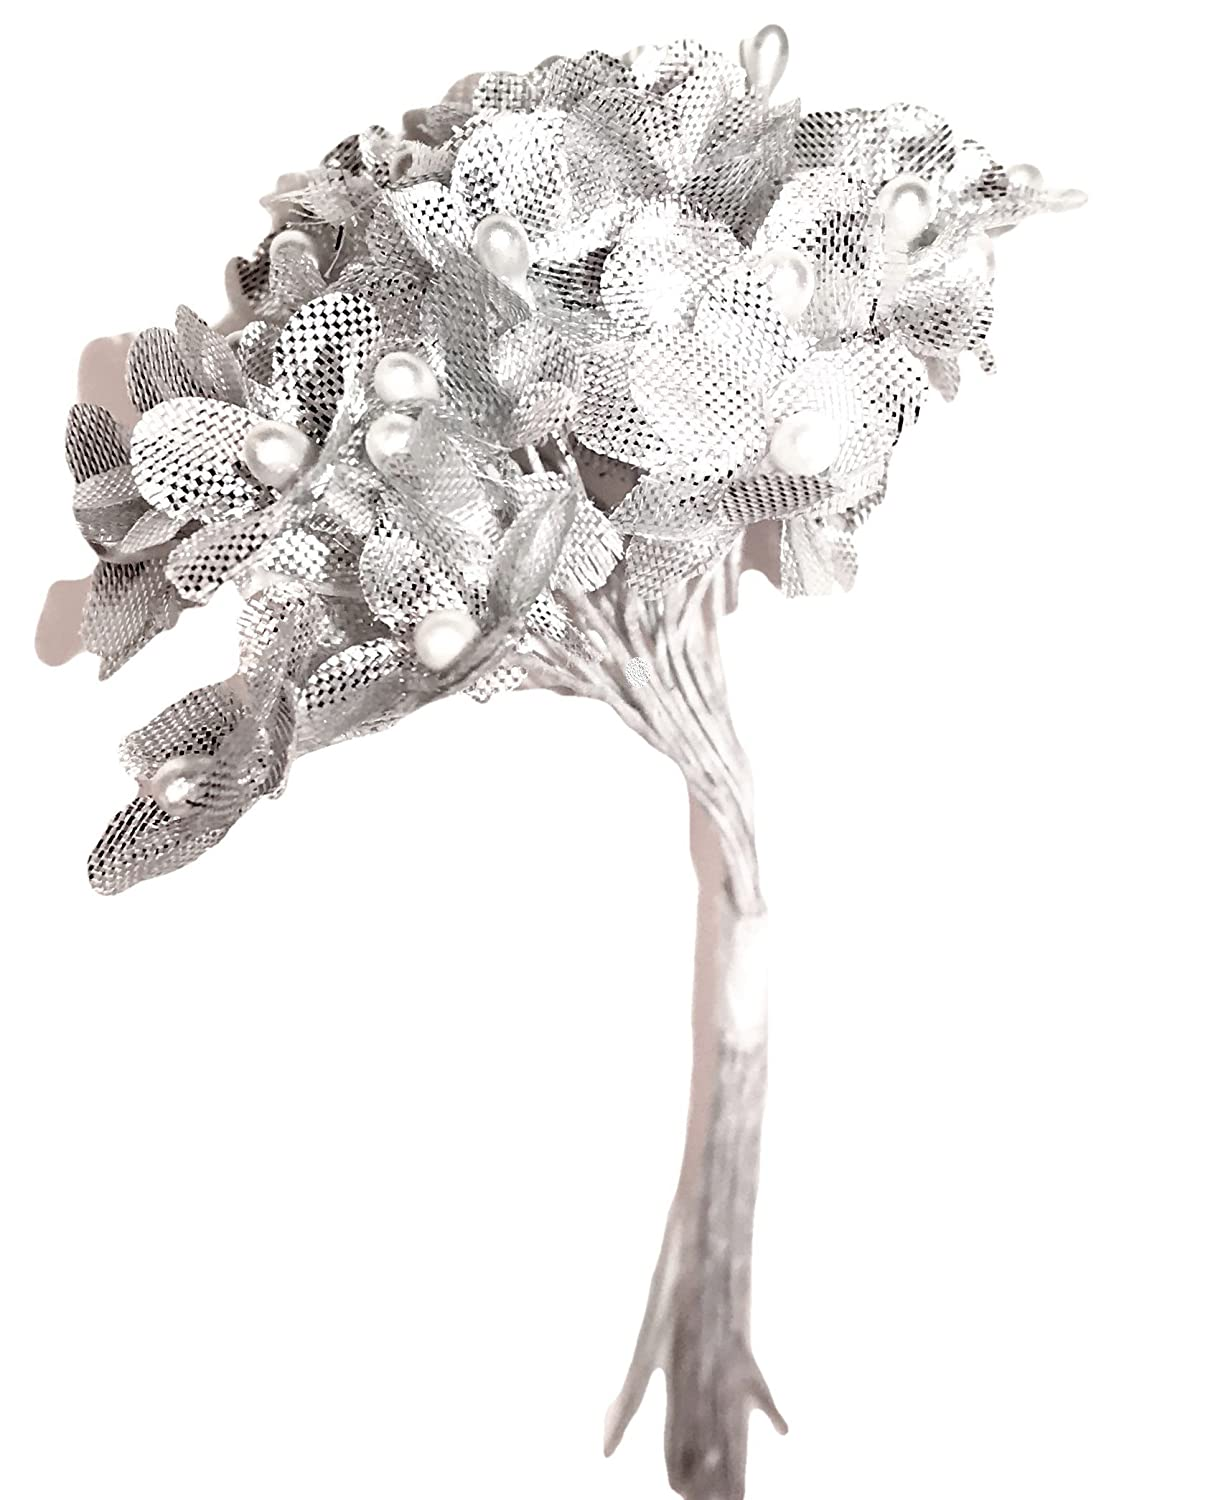 Mini Silver Lame' Fabric Flowers with Silver Pearl Centers on White Coated Wire Picks, Corsages, Wedding Bouquet, Floral Accents, Anniversary, Cake Decor, Bouquets, Candle Ring, Tabletop Decor Aliba 4336861431